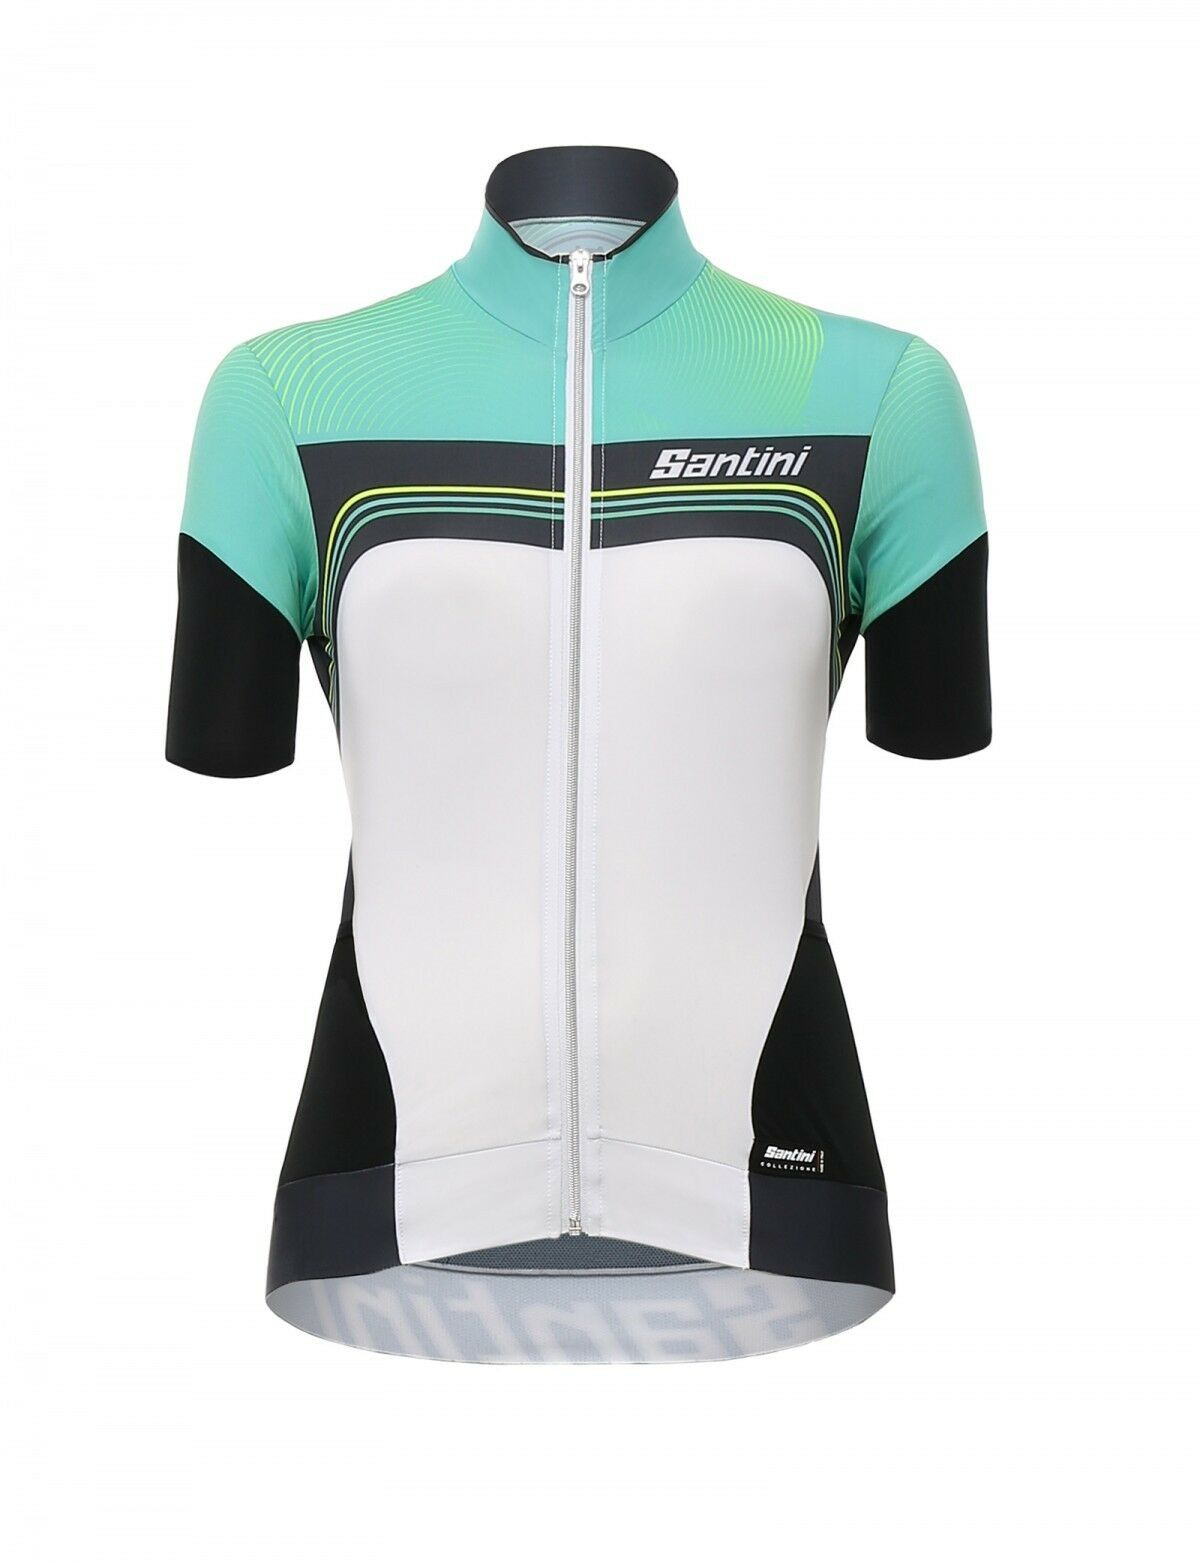 SHIRT SANTINI QUEEN OF THE MOUNTAINS WHITE GREEN size S   cheap wholesale